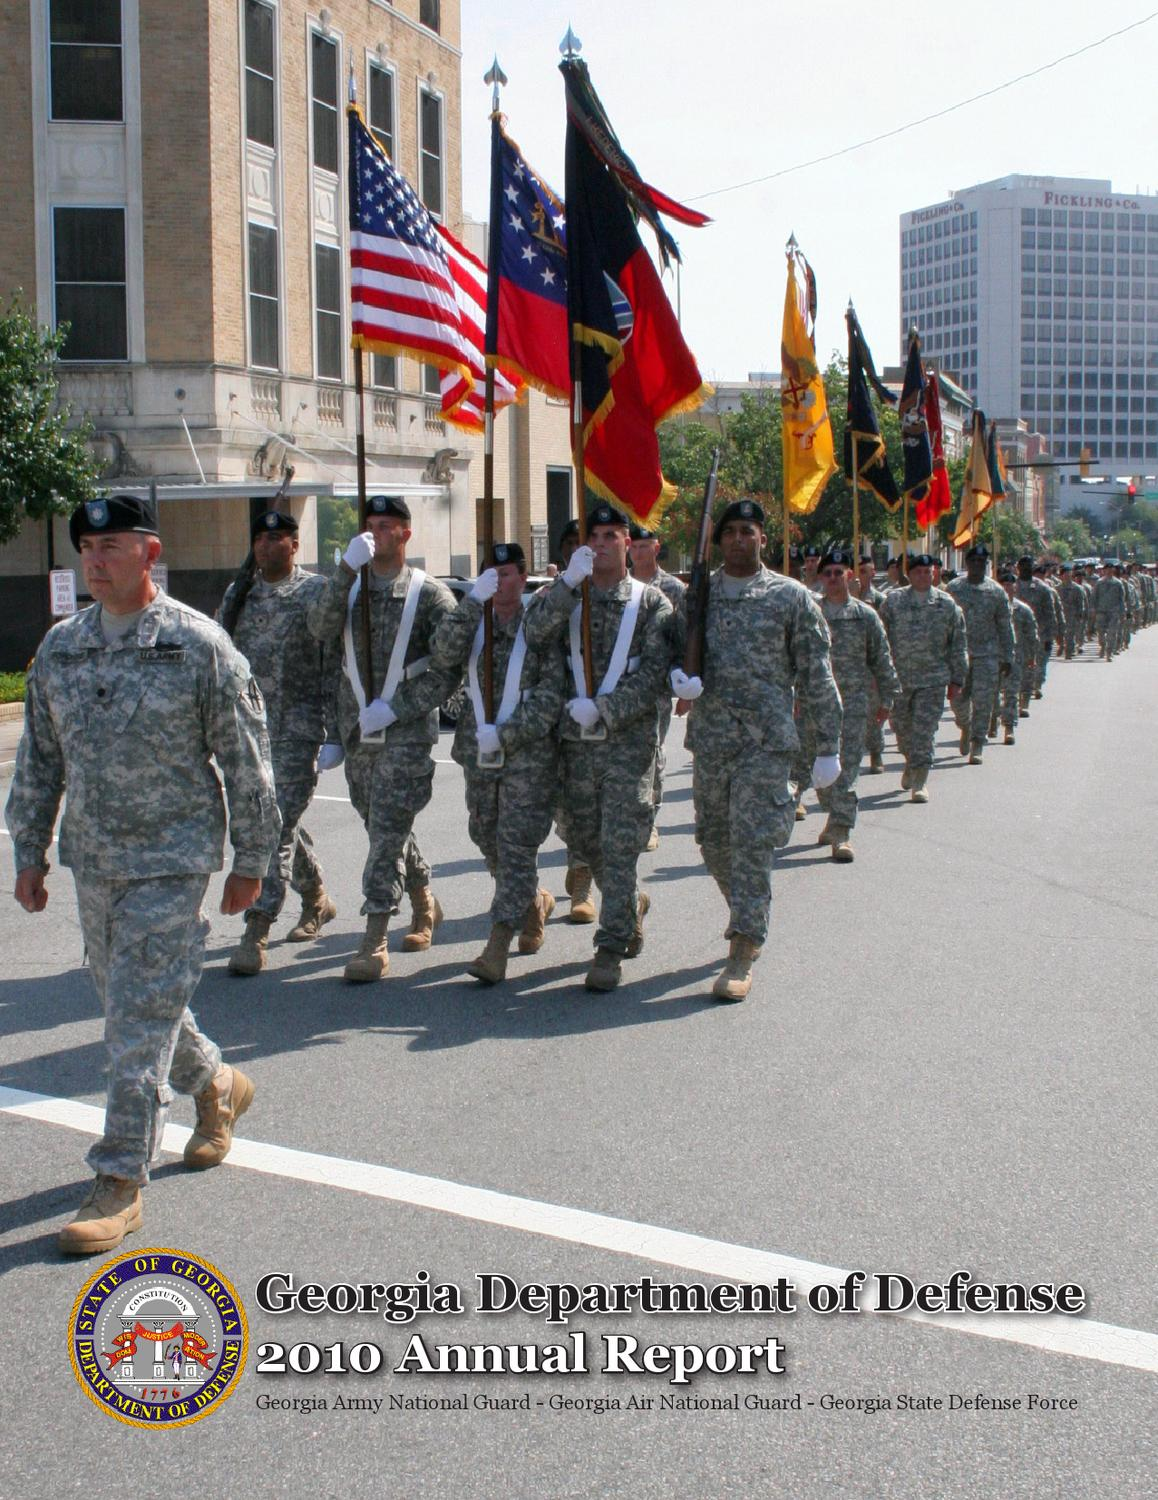 Georgia department of defense 2010 annual report by georgia national guard issuu